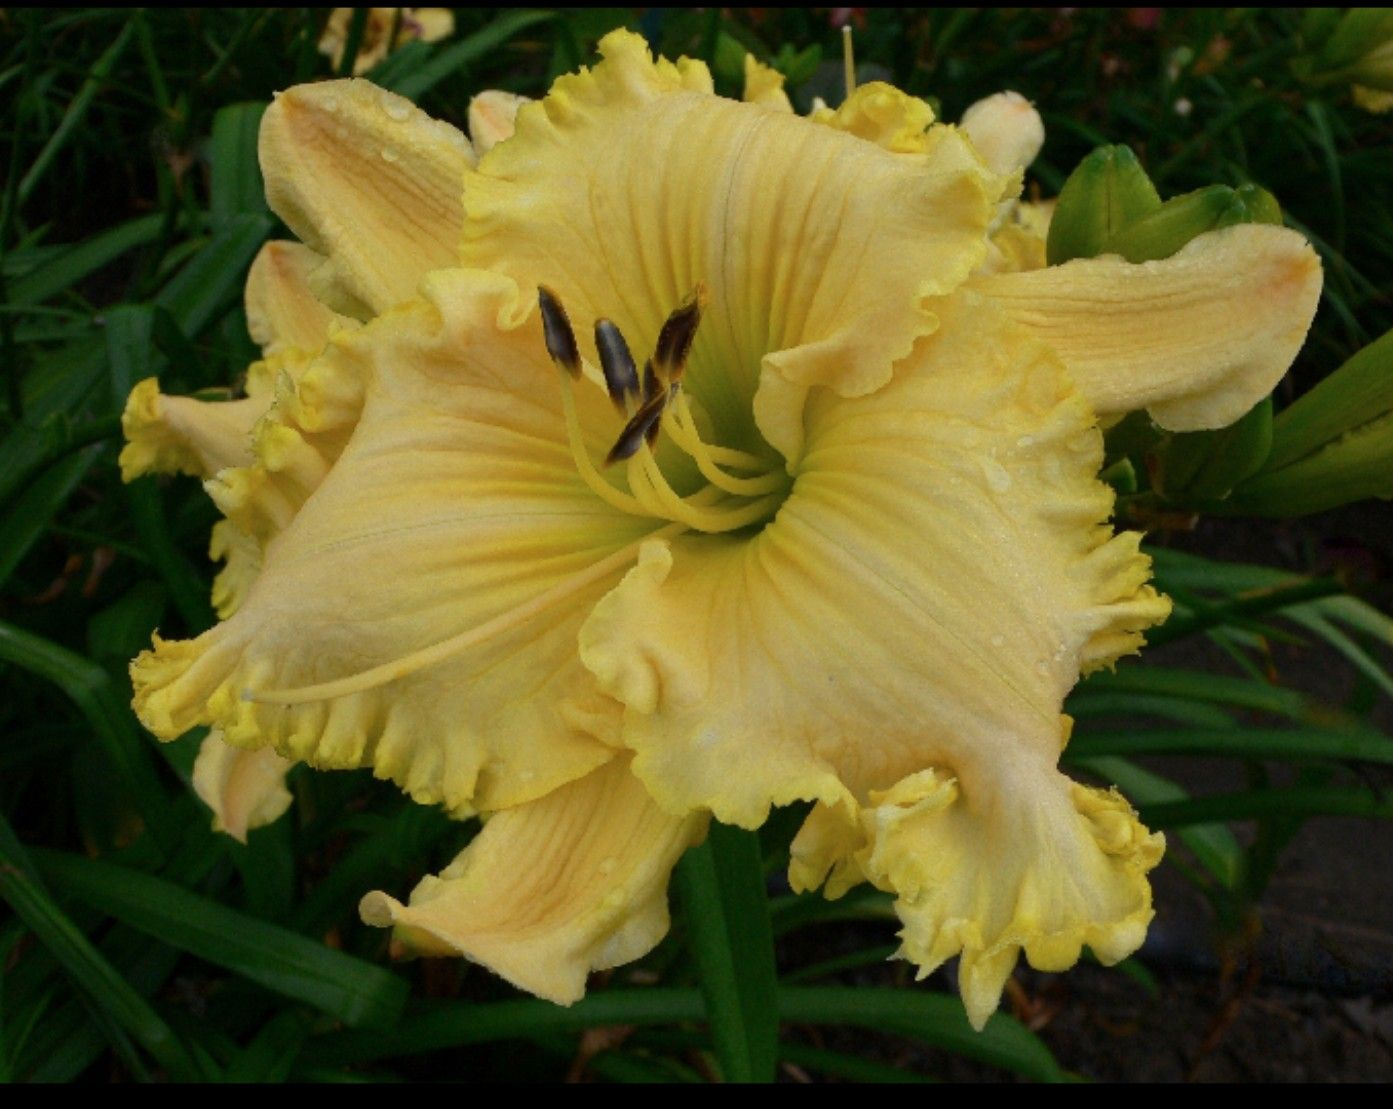 Luxury Brocaded Gown Daylily Ideas - Images for wedding gown ideas ...